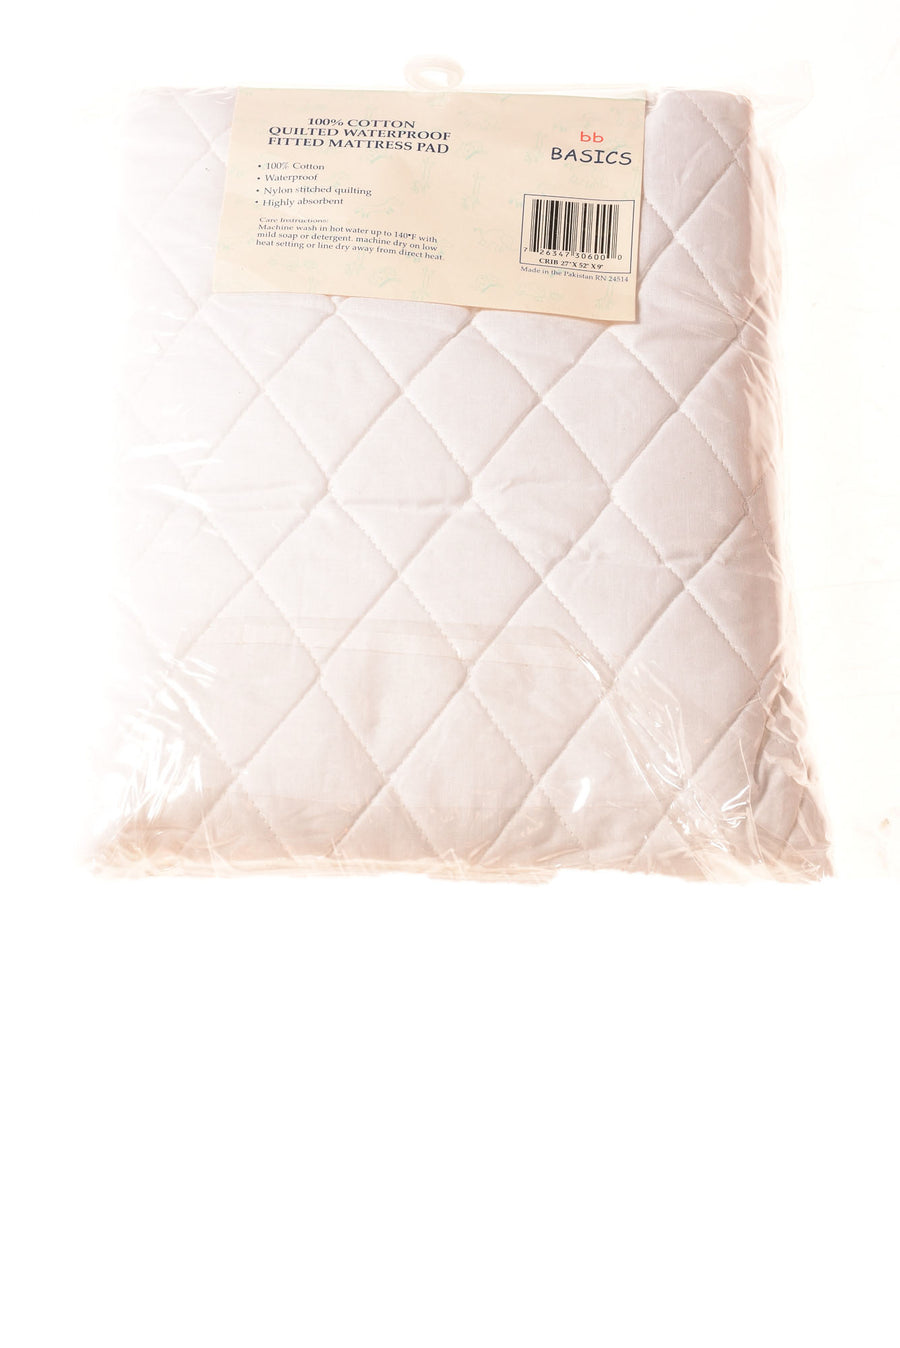 NEW BB Basics Baby Mattress Pad N/A White